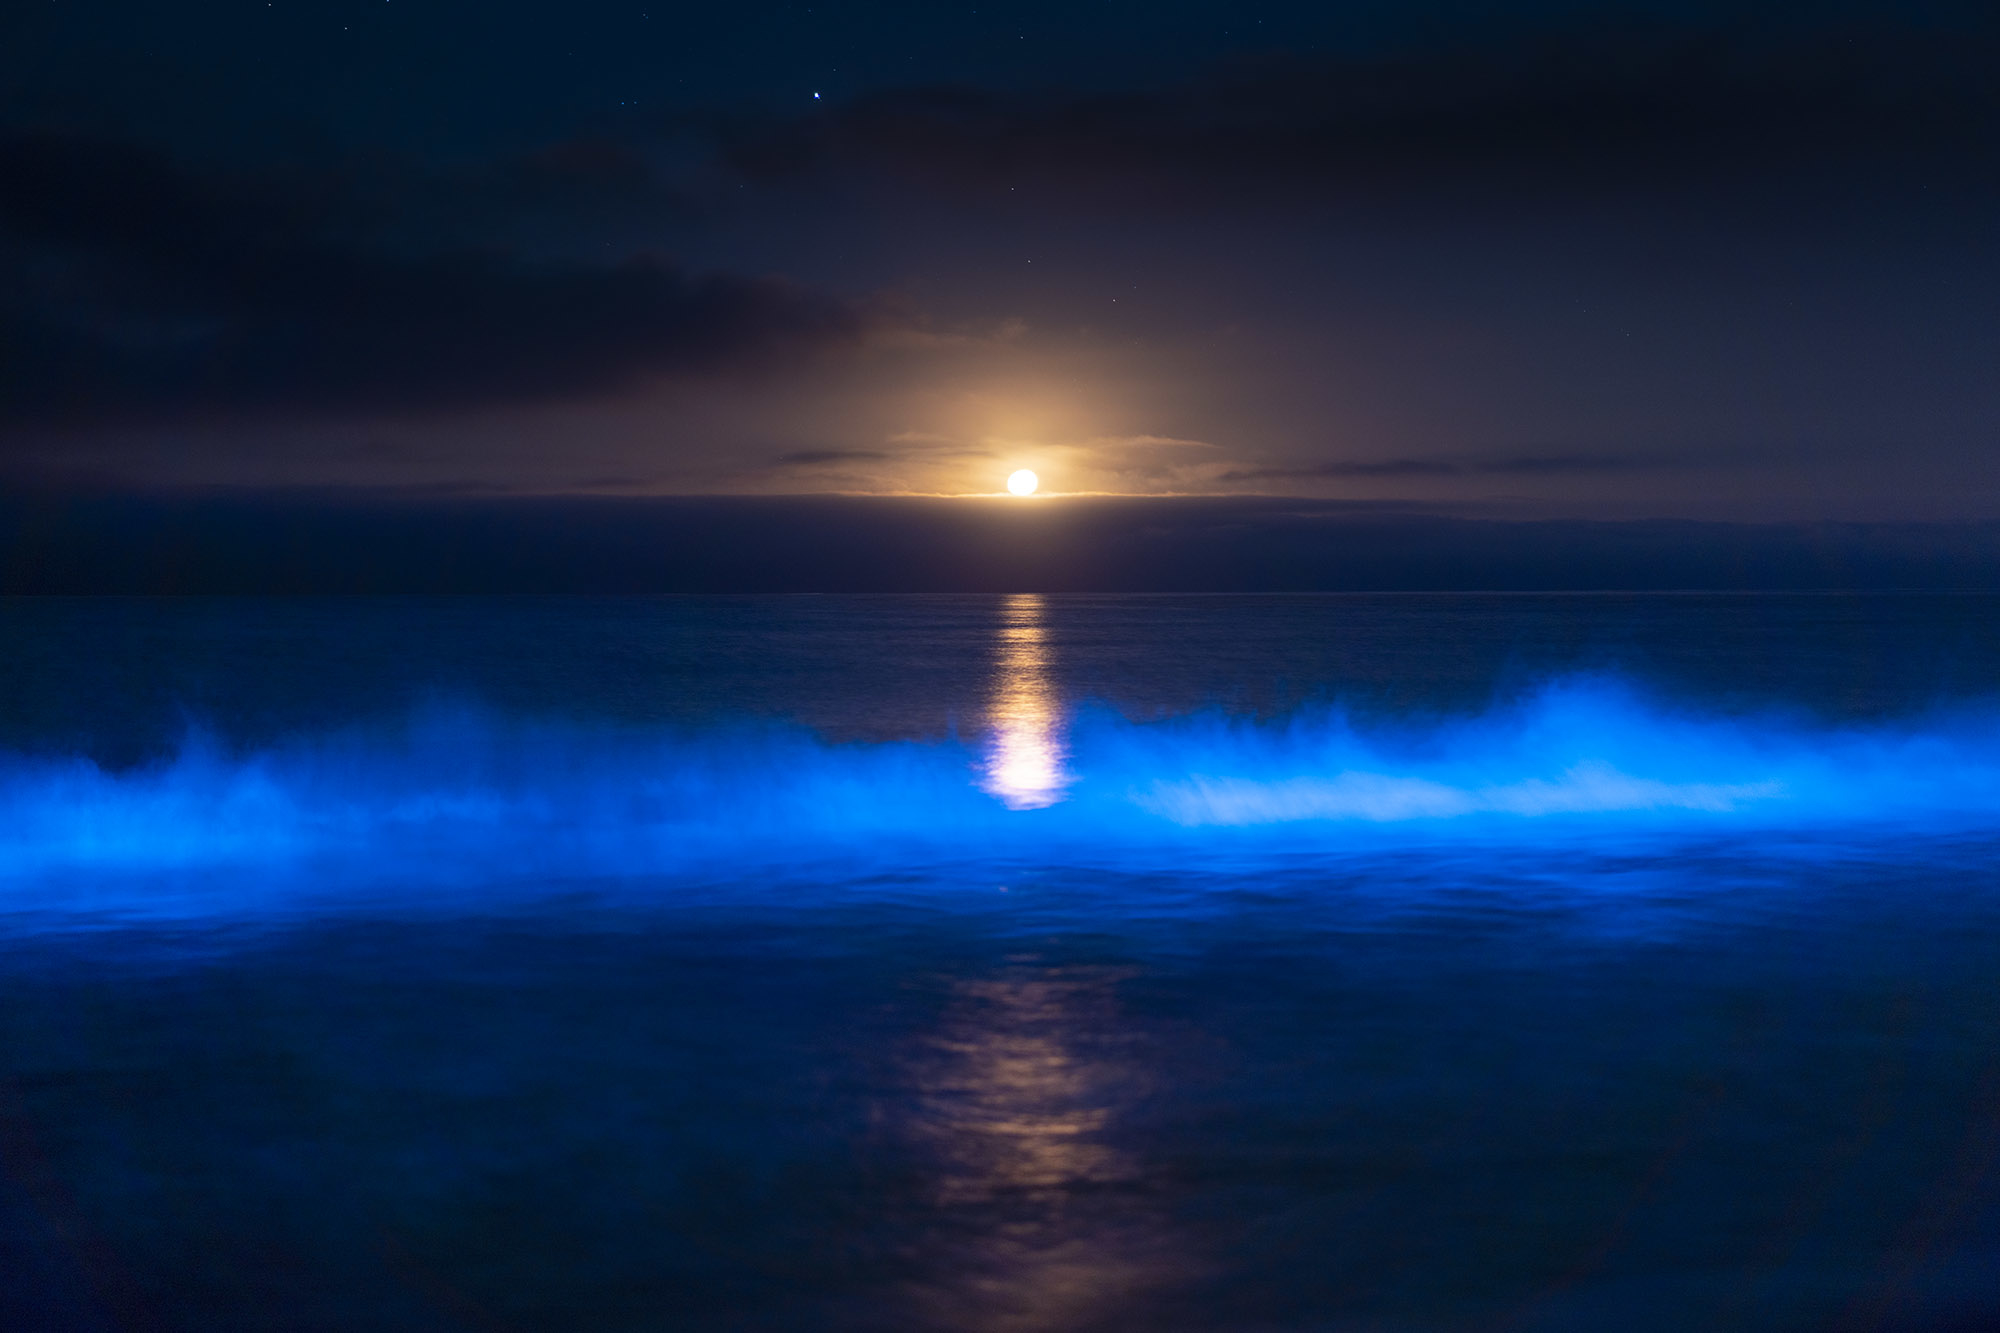 A glowing wave crests with a full moon shining on the horizon.